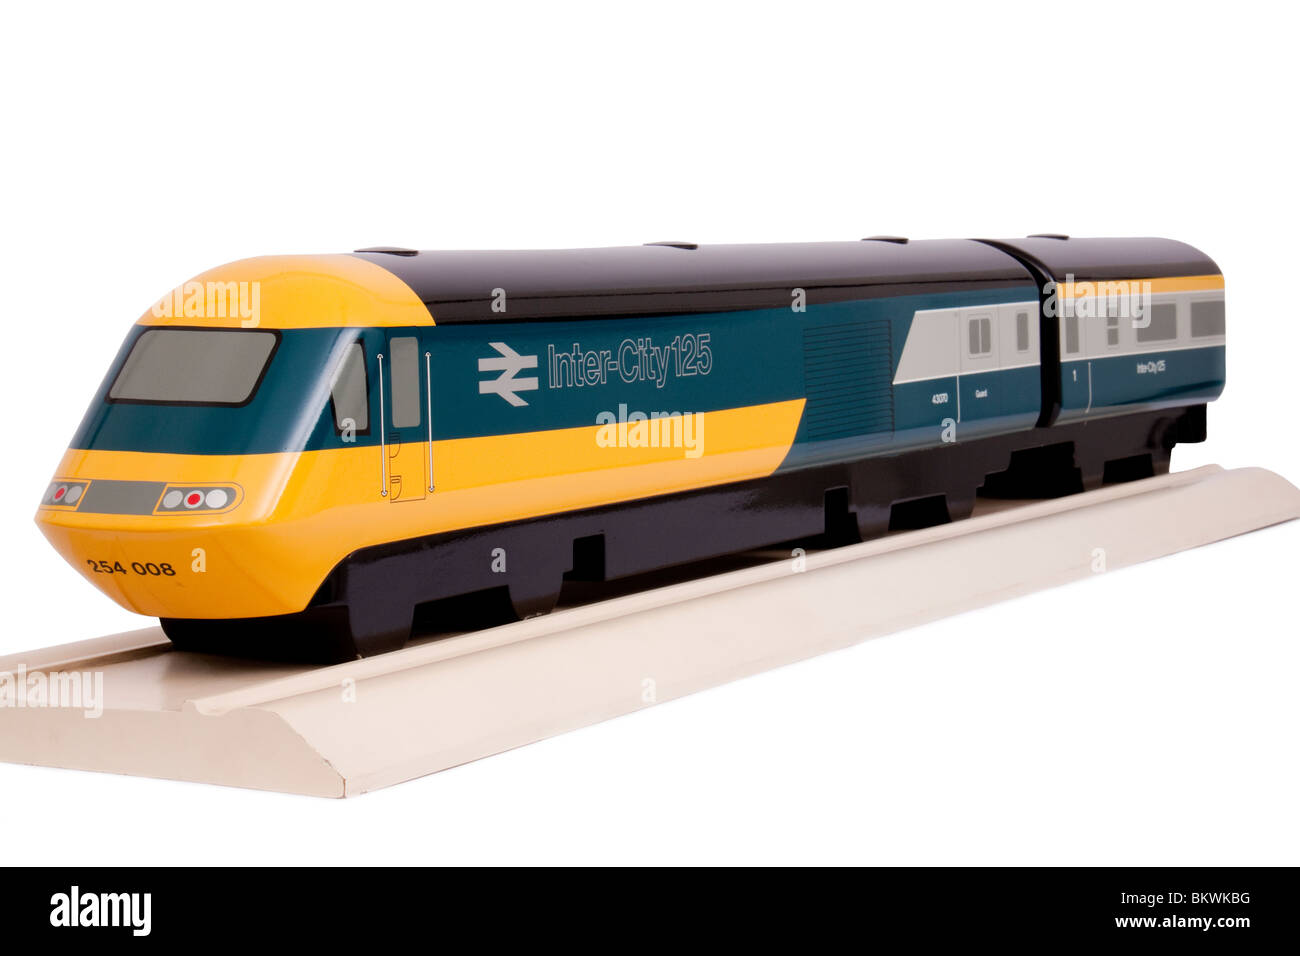 Vintage handmade display model of British Rail BR InterCity 125 high-speed passenger train, isolated against white - Stock Image